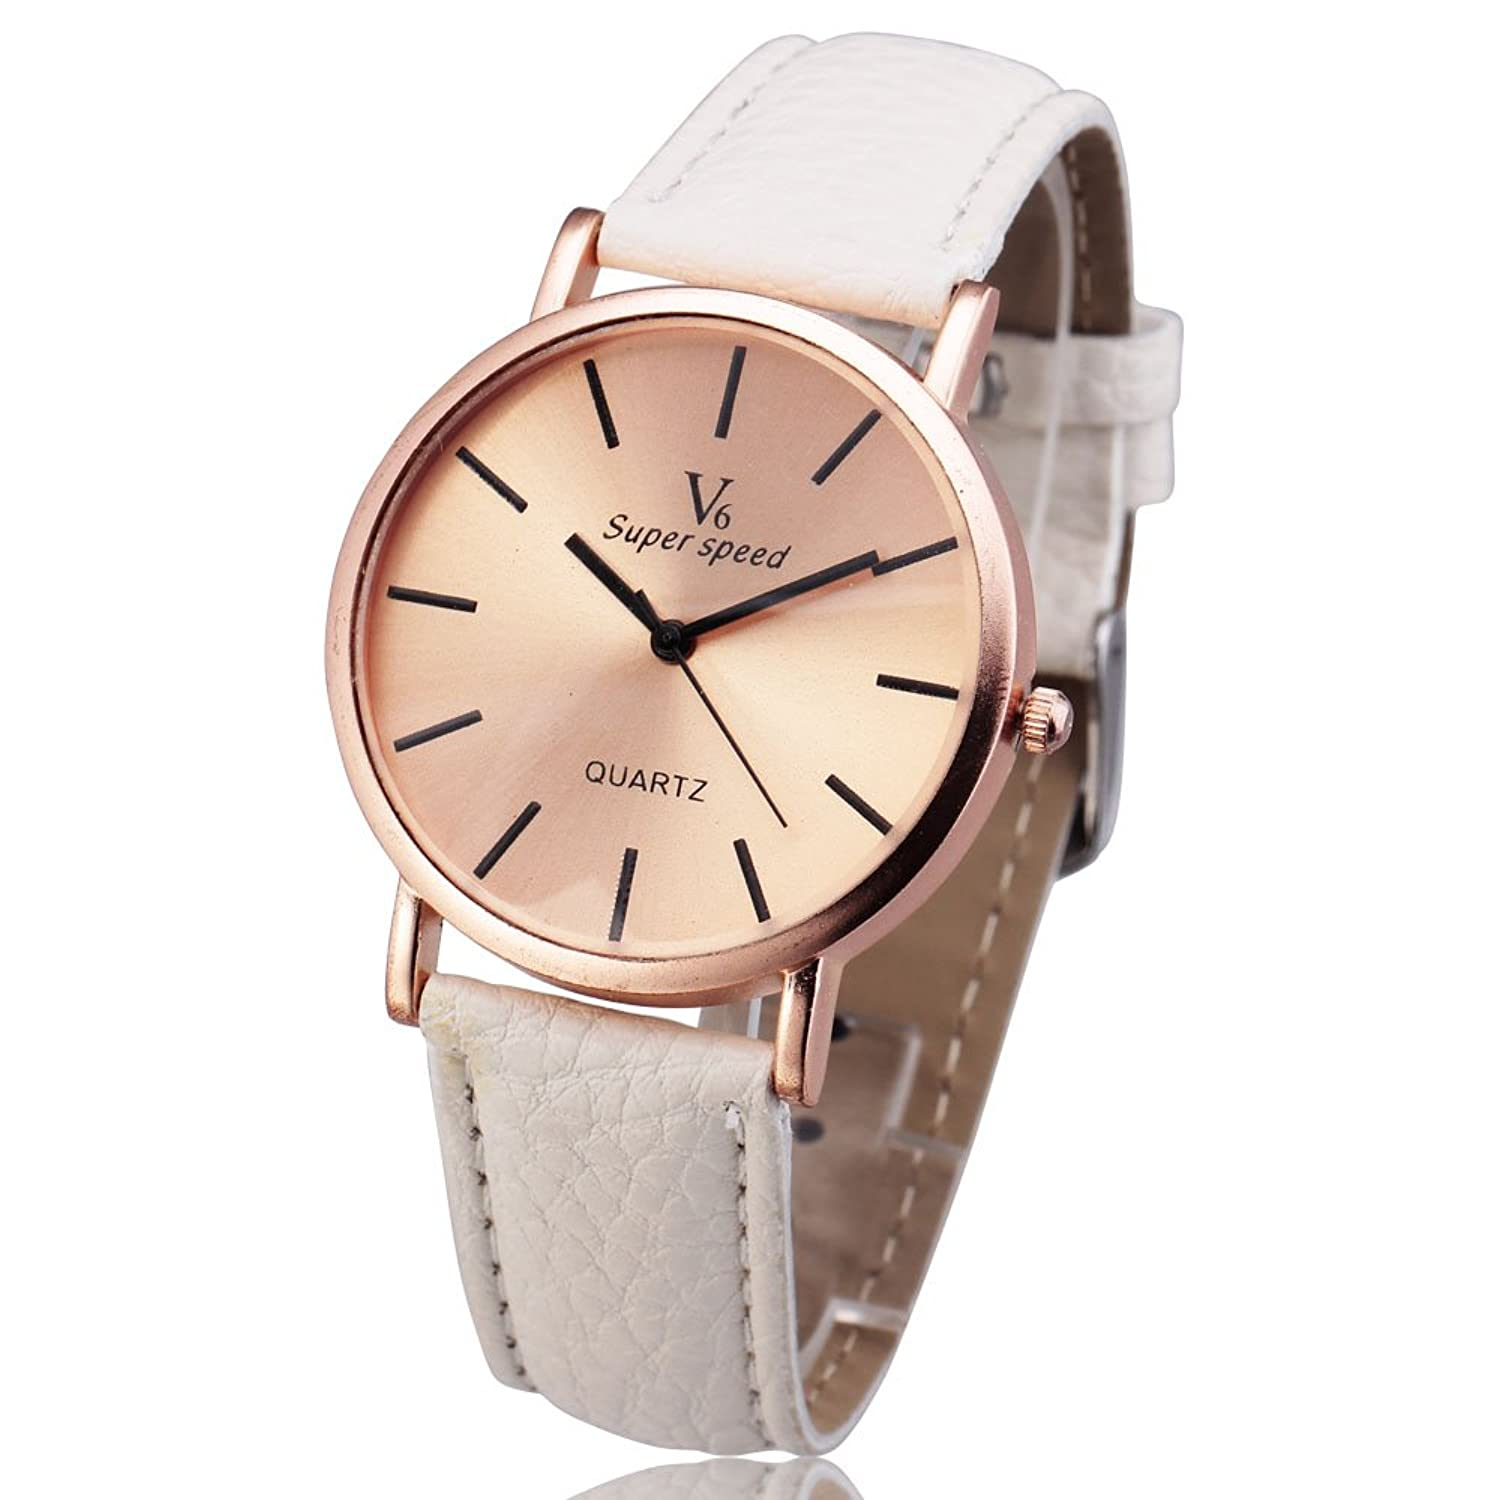 Amazon.com: New Arrive Men Women Unisex Watches V6 Quartz Round Dial Fashion Leather Female Wristwatch watch hot mujer relojes: Watches